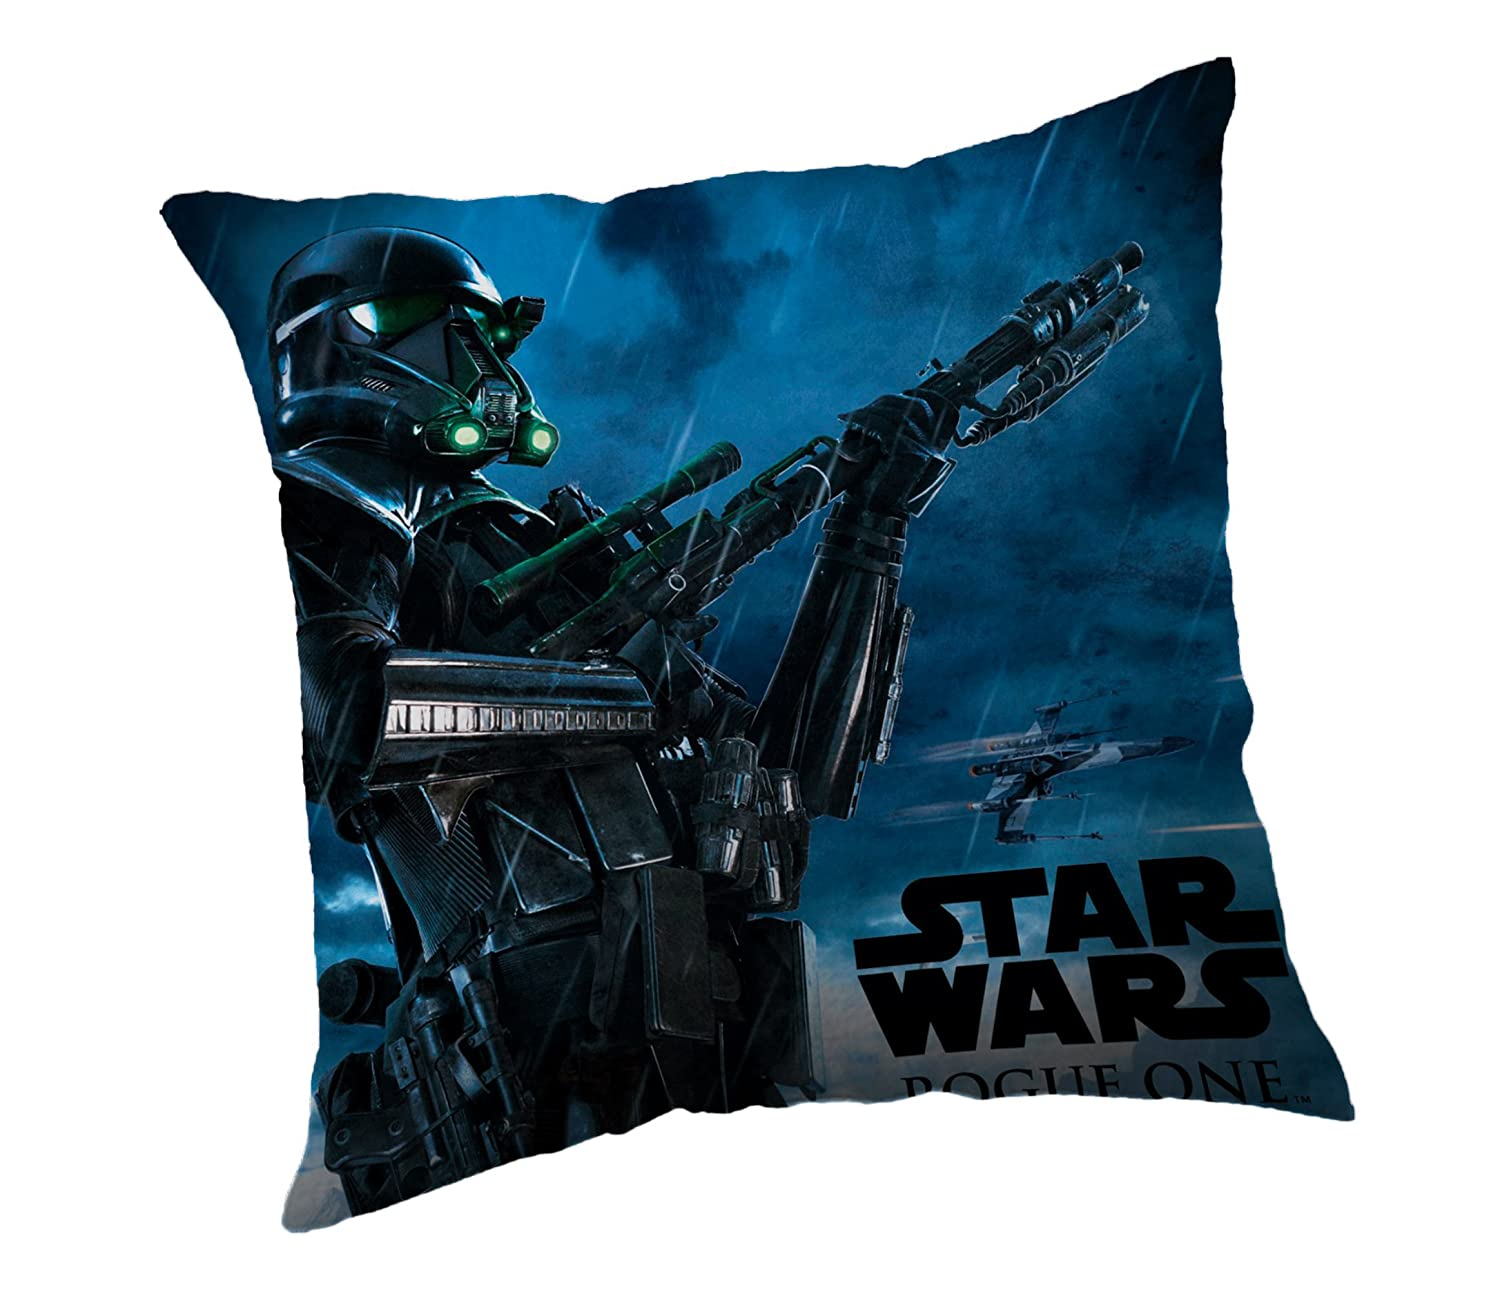 Jerry Fabrics 121 Decorative Throw Pillows for Kids 40 x 40cm Star Wars Character Cushion, Polyester, SW 3, 40 x 40 x 5 cm JERRY FABRICS s.r.o.